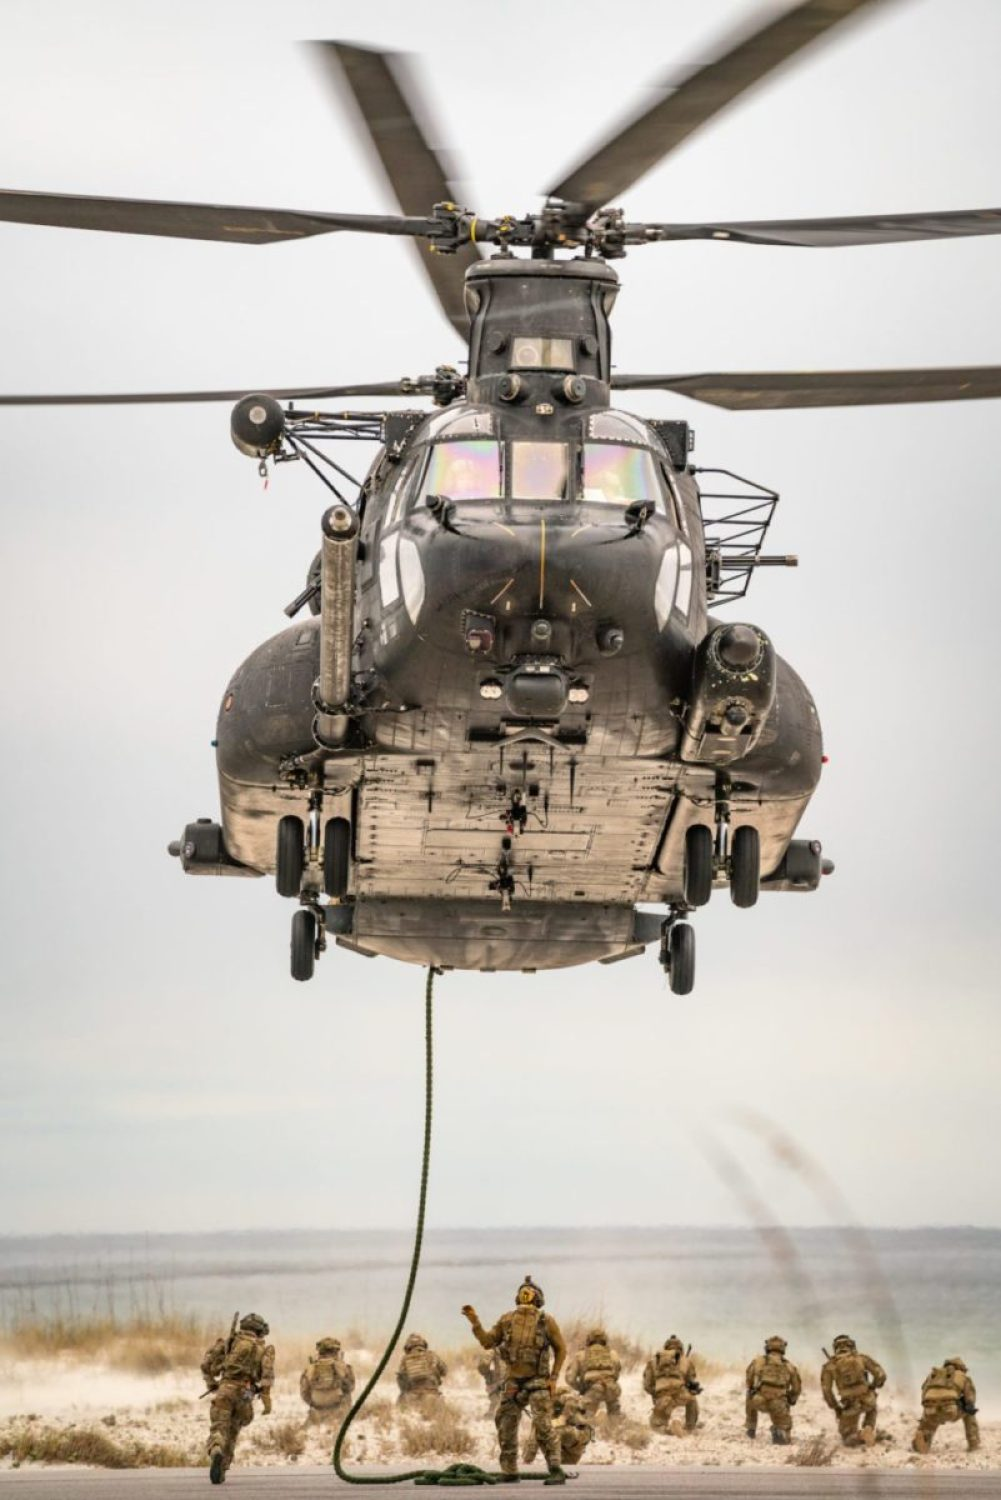 An MH-47G Chinook helicopter from the 160th Special Operations Aviation Regiment hovers above a group of U.S. Air Force Special Tactics operators conducting fast-rope training as part of the Special Tactics Training Squadron at Hurlburt Field, Florida, Feb. 19, 2020. (USSOCOM Photo by Maj. Jeff Slinker)